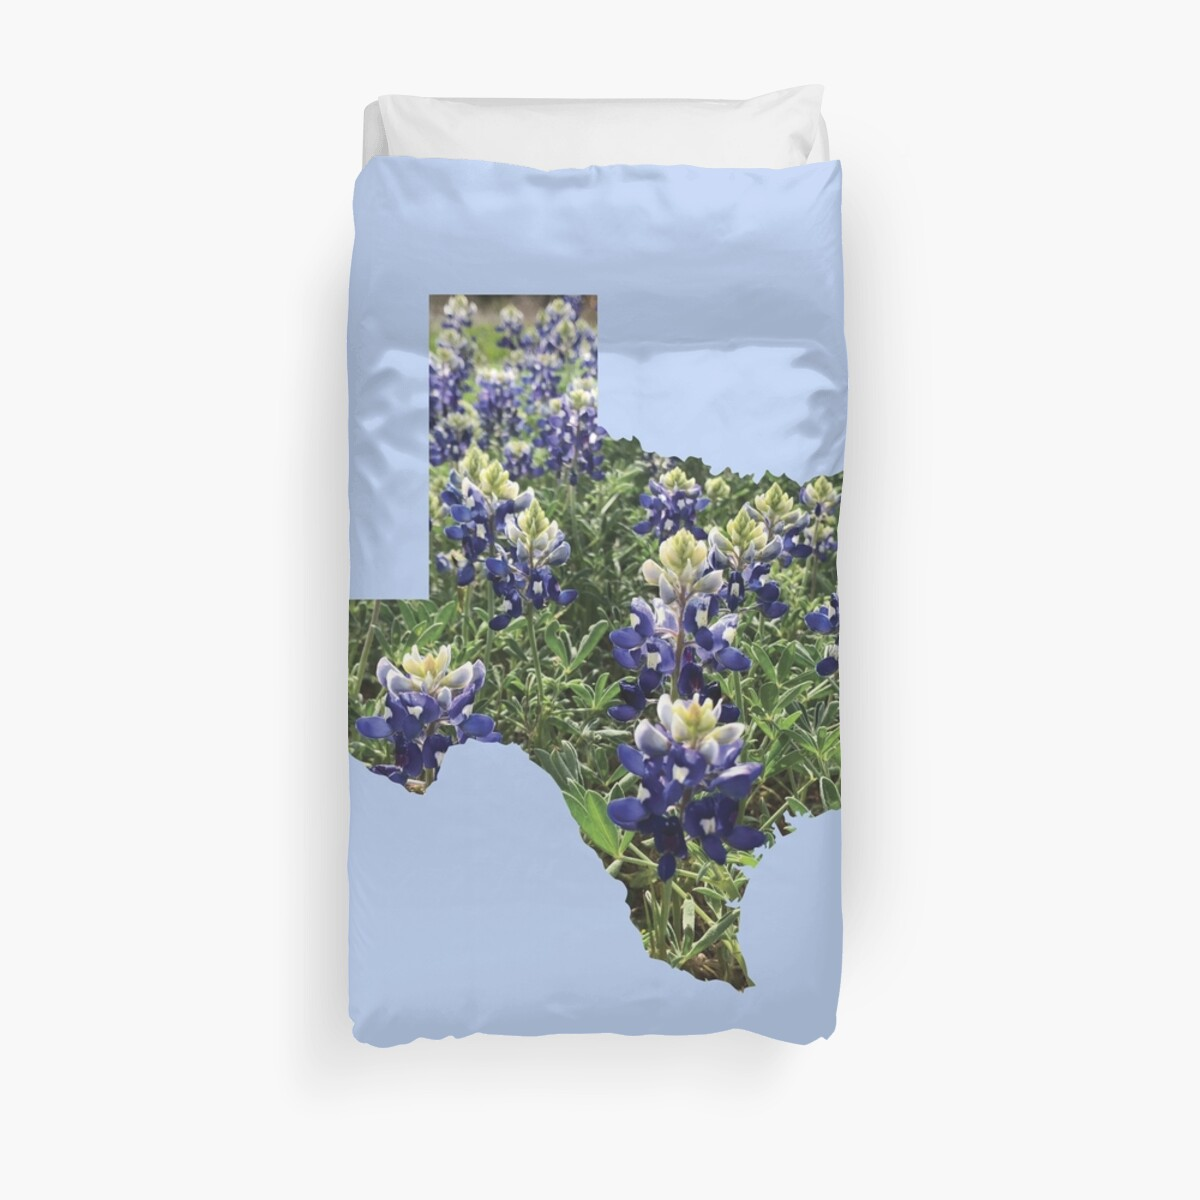 Texas Bluebonnets by rodentgorl